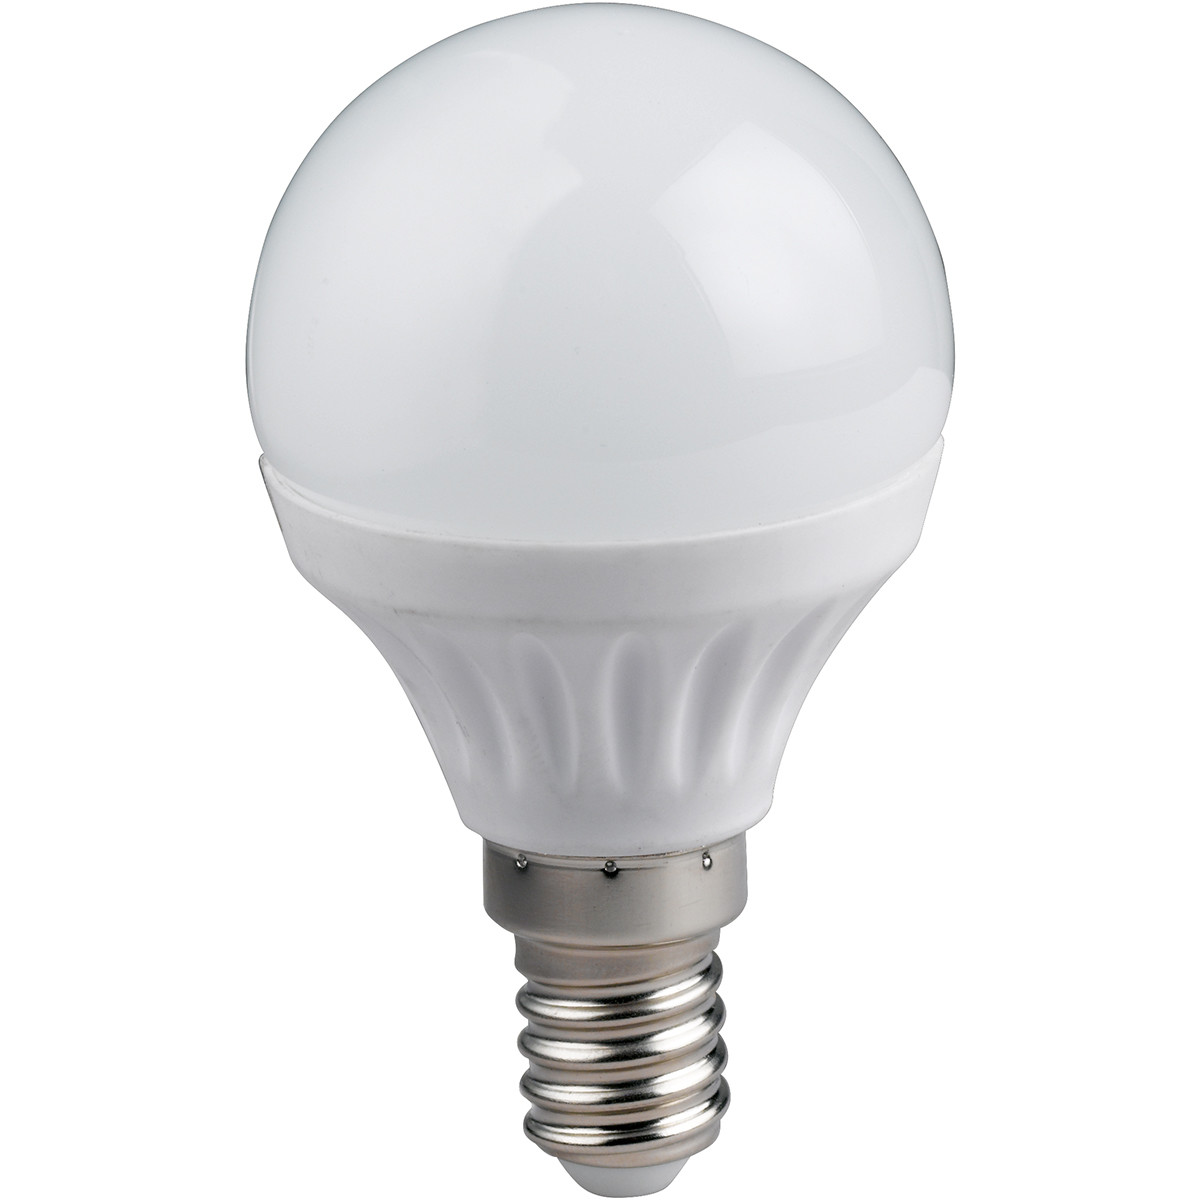 LED Lamp WiZ - Smart LED - Trion Akusti Bulb - E14 Fitting - 5W - Slimme LED - Dimbaar - Mat Wit - Kunststof